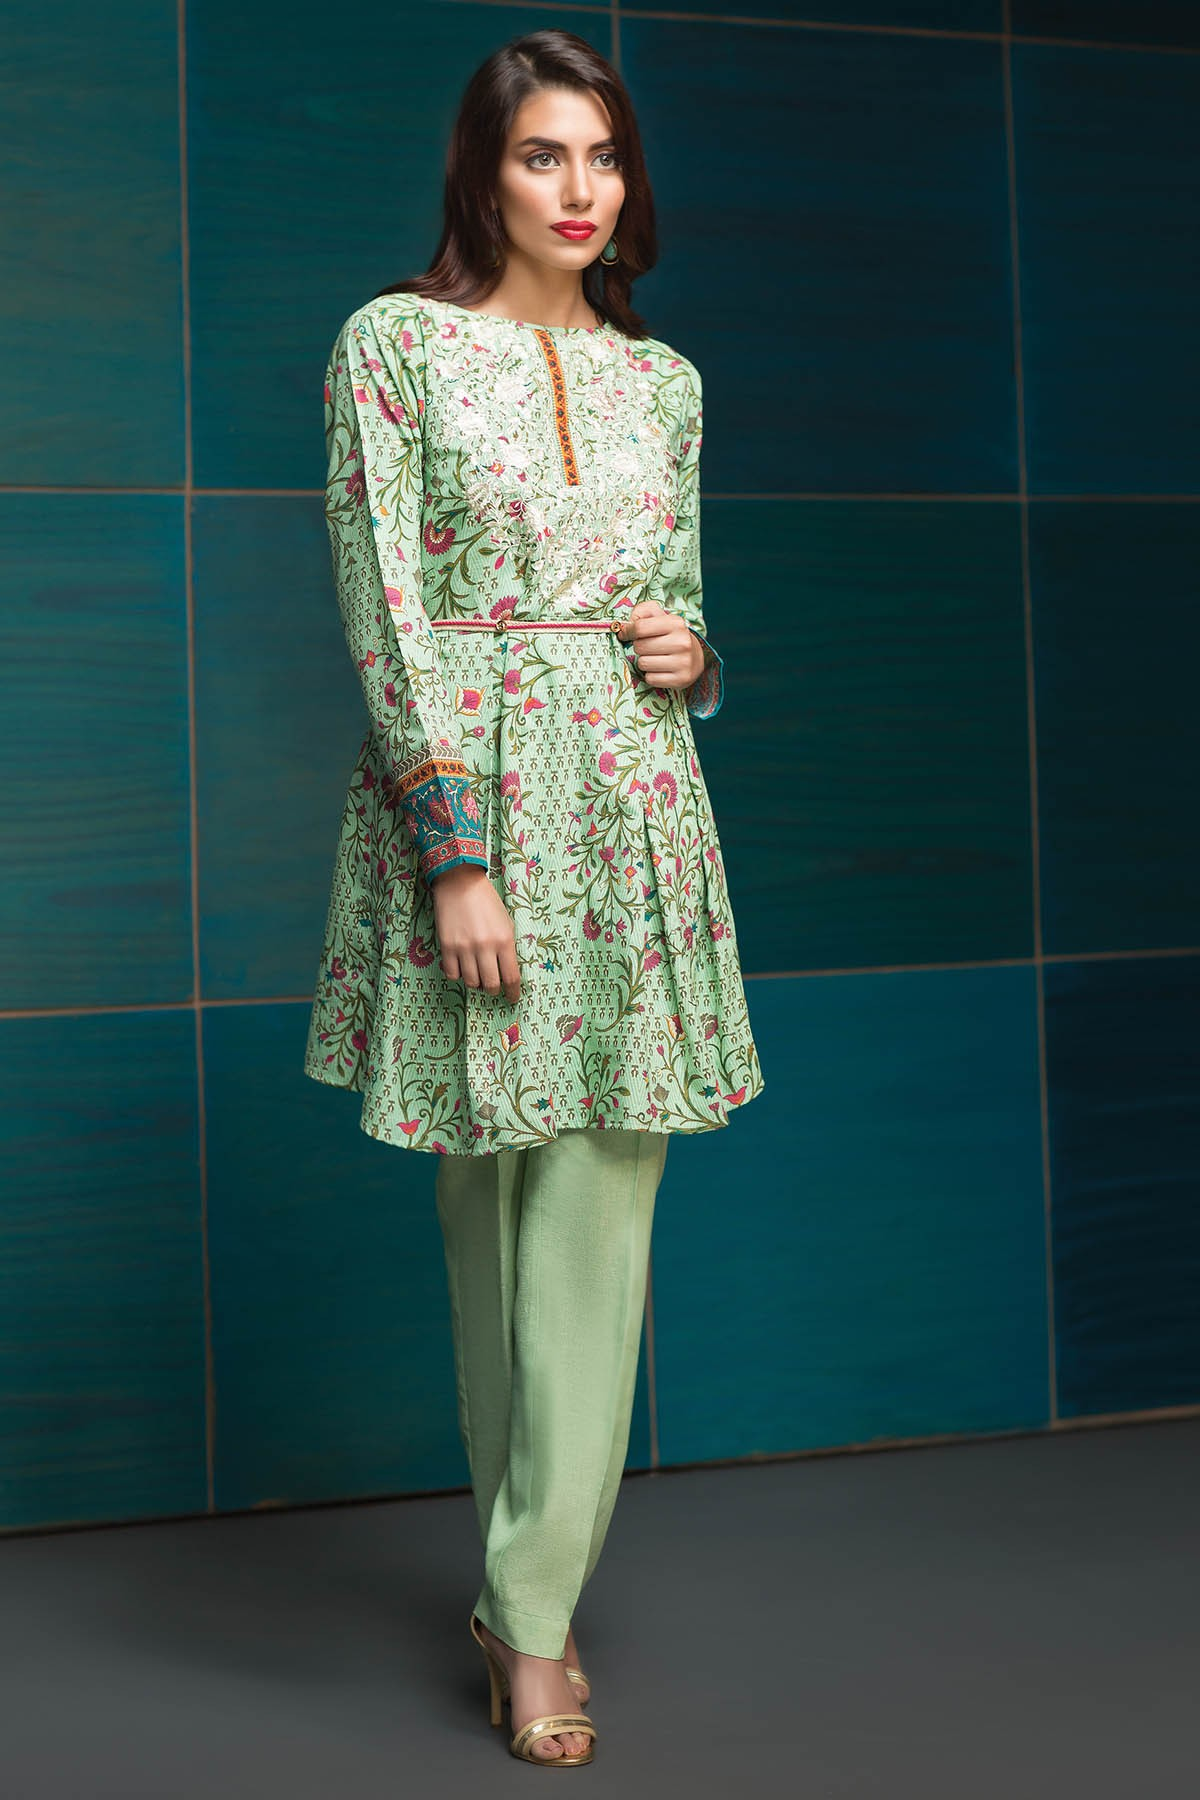 Embroidered Mint dress by khaadi for winter